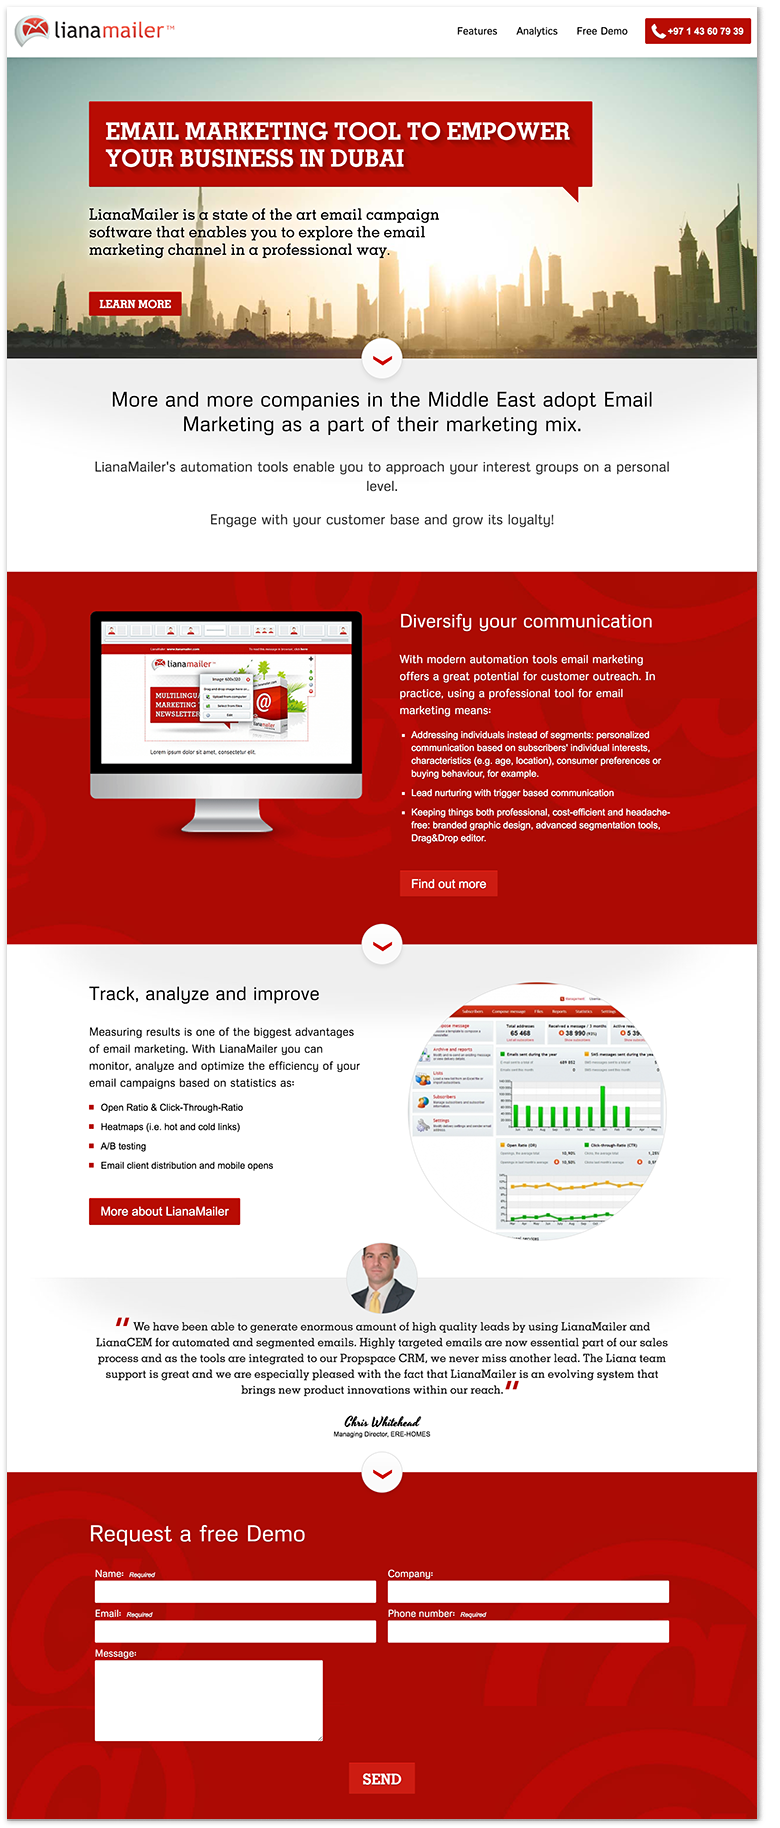 The landing page of the email marketing tool targeted to Dubai audience